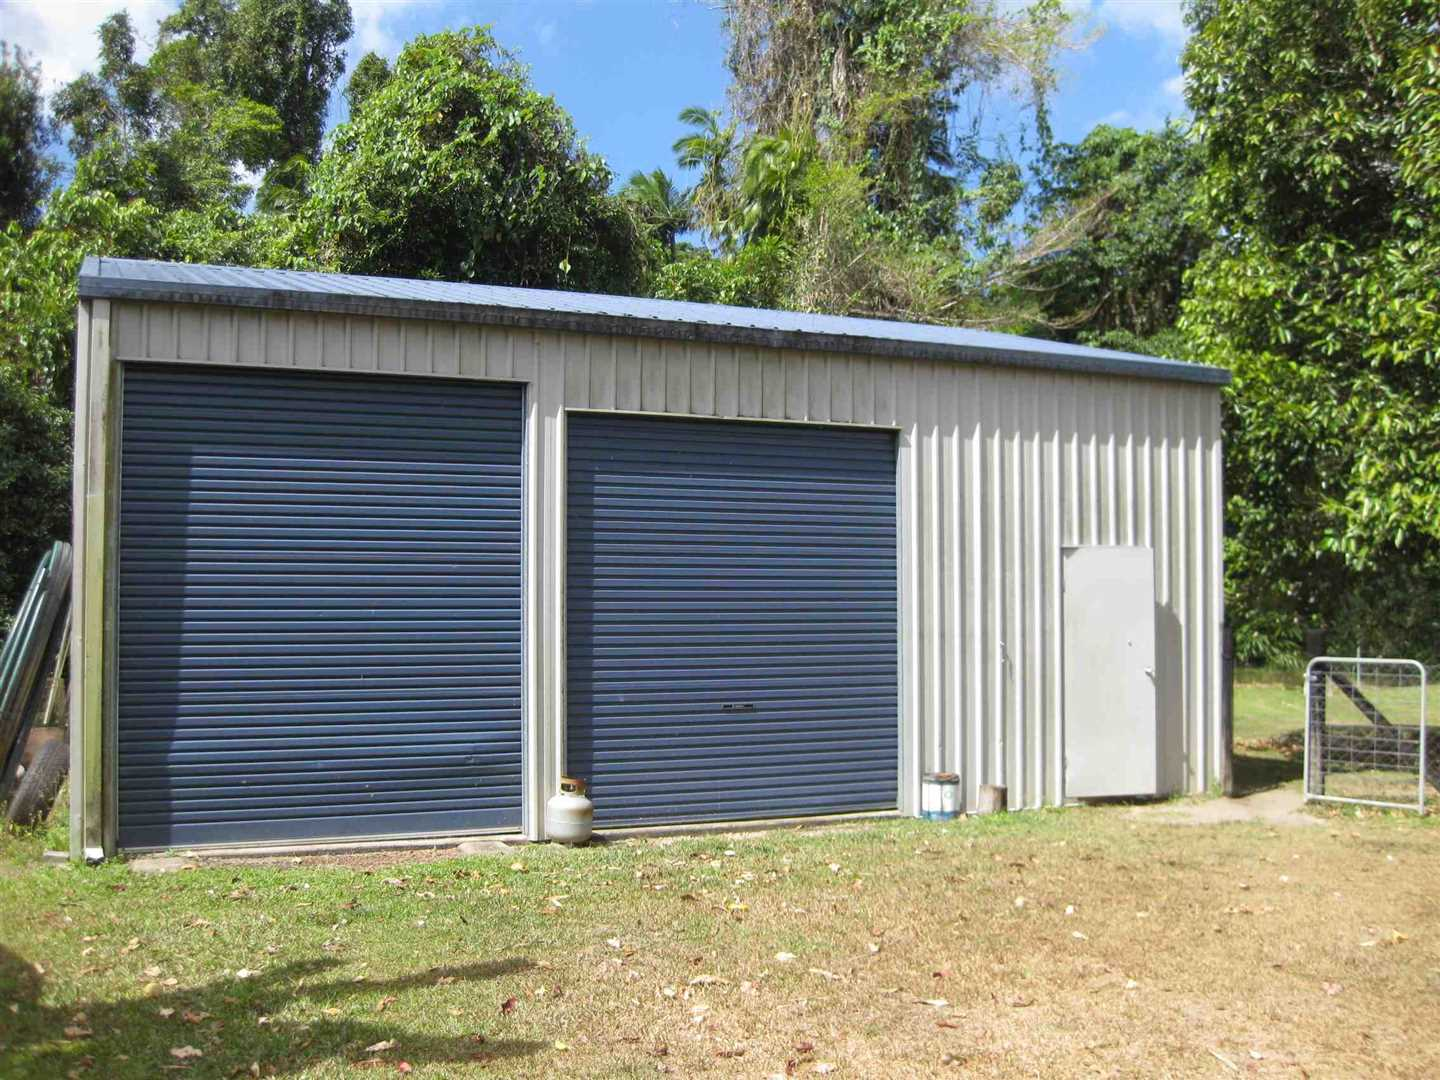 View of part of lockable shed with three bays, photo 1